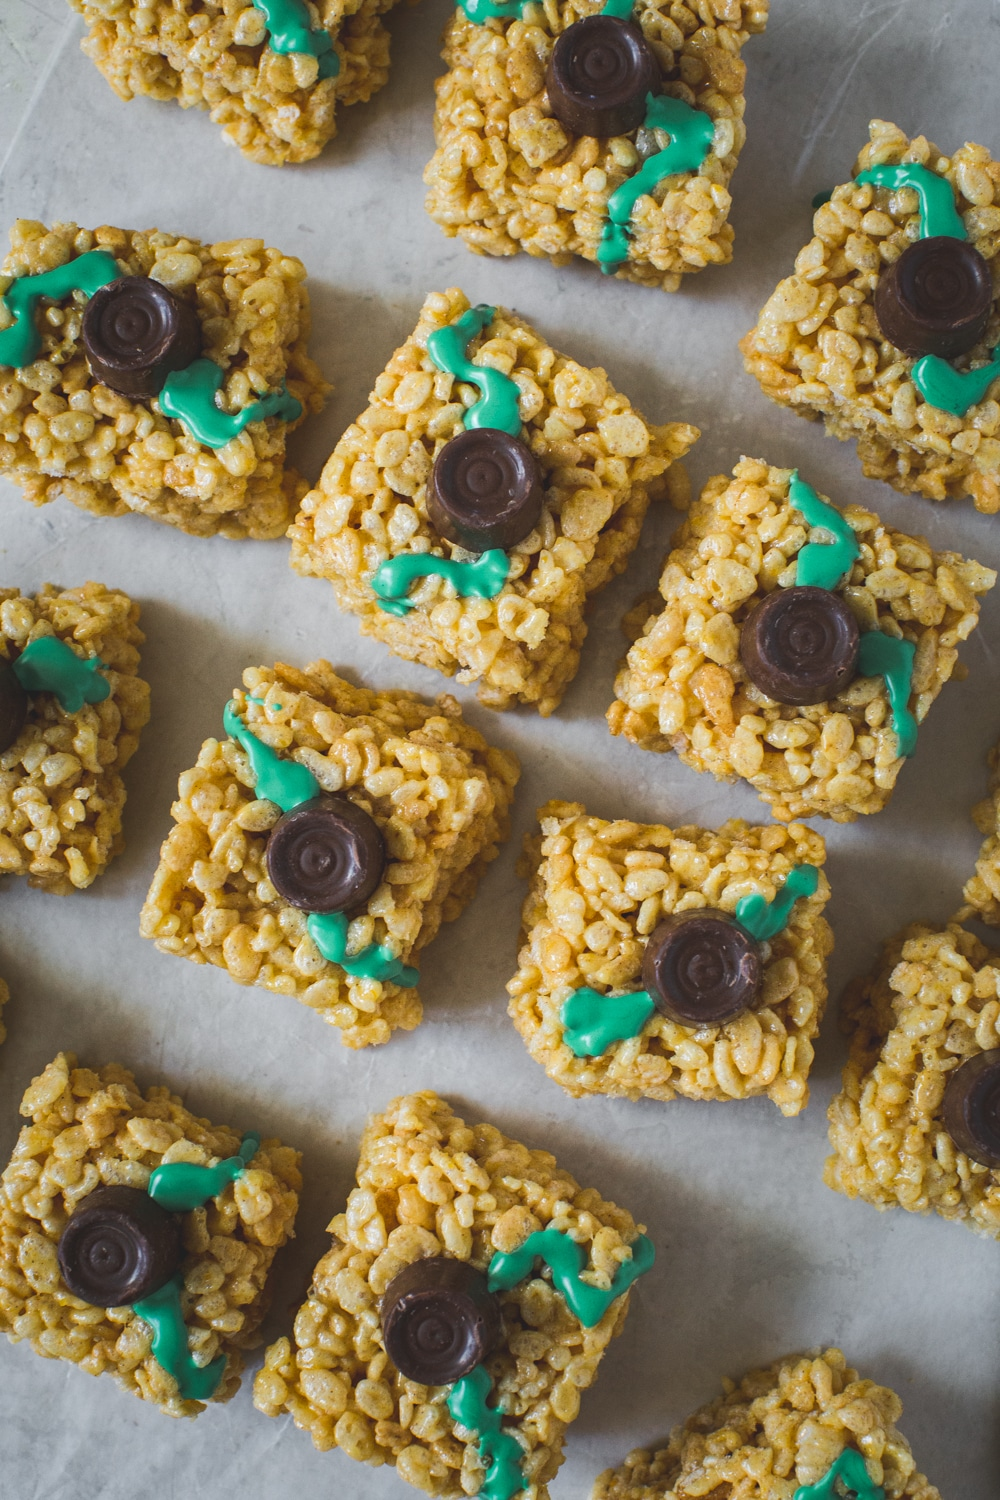 Halloween Rice Krispie treats with a Rolo's candy stem